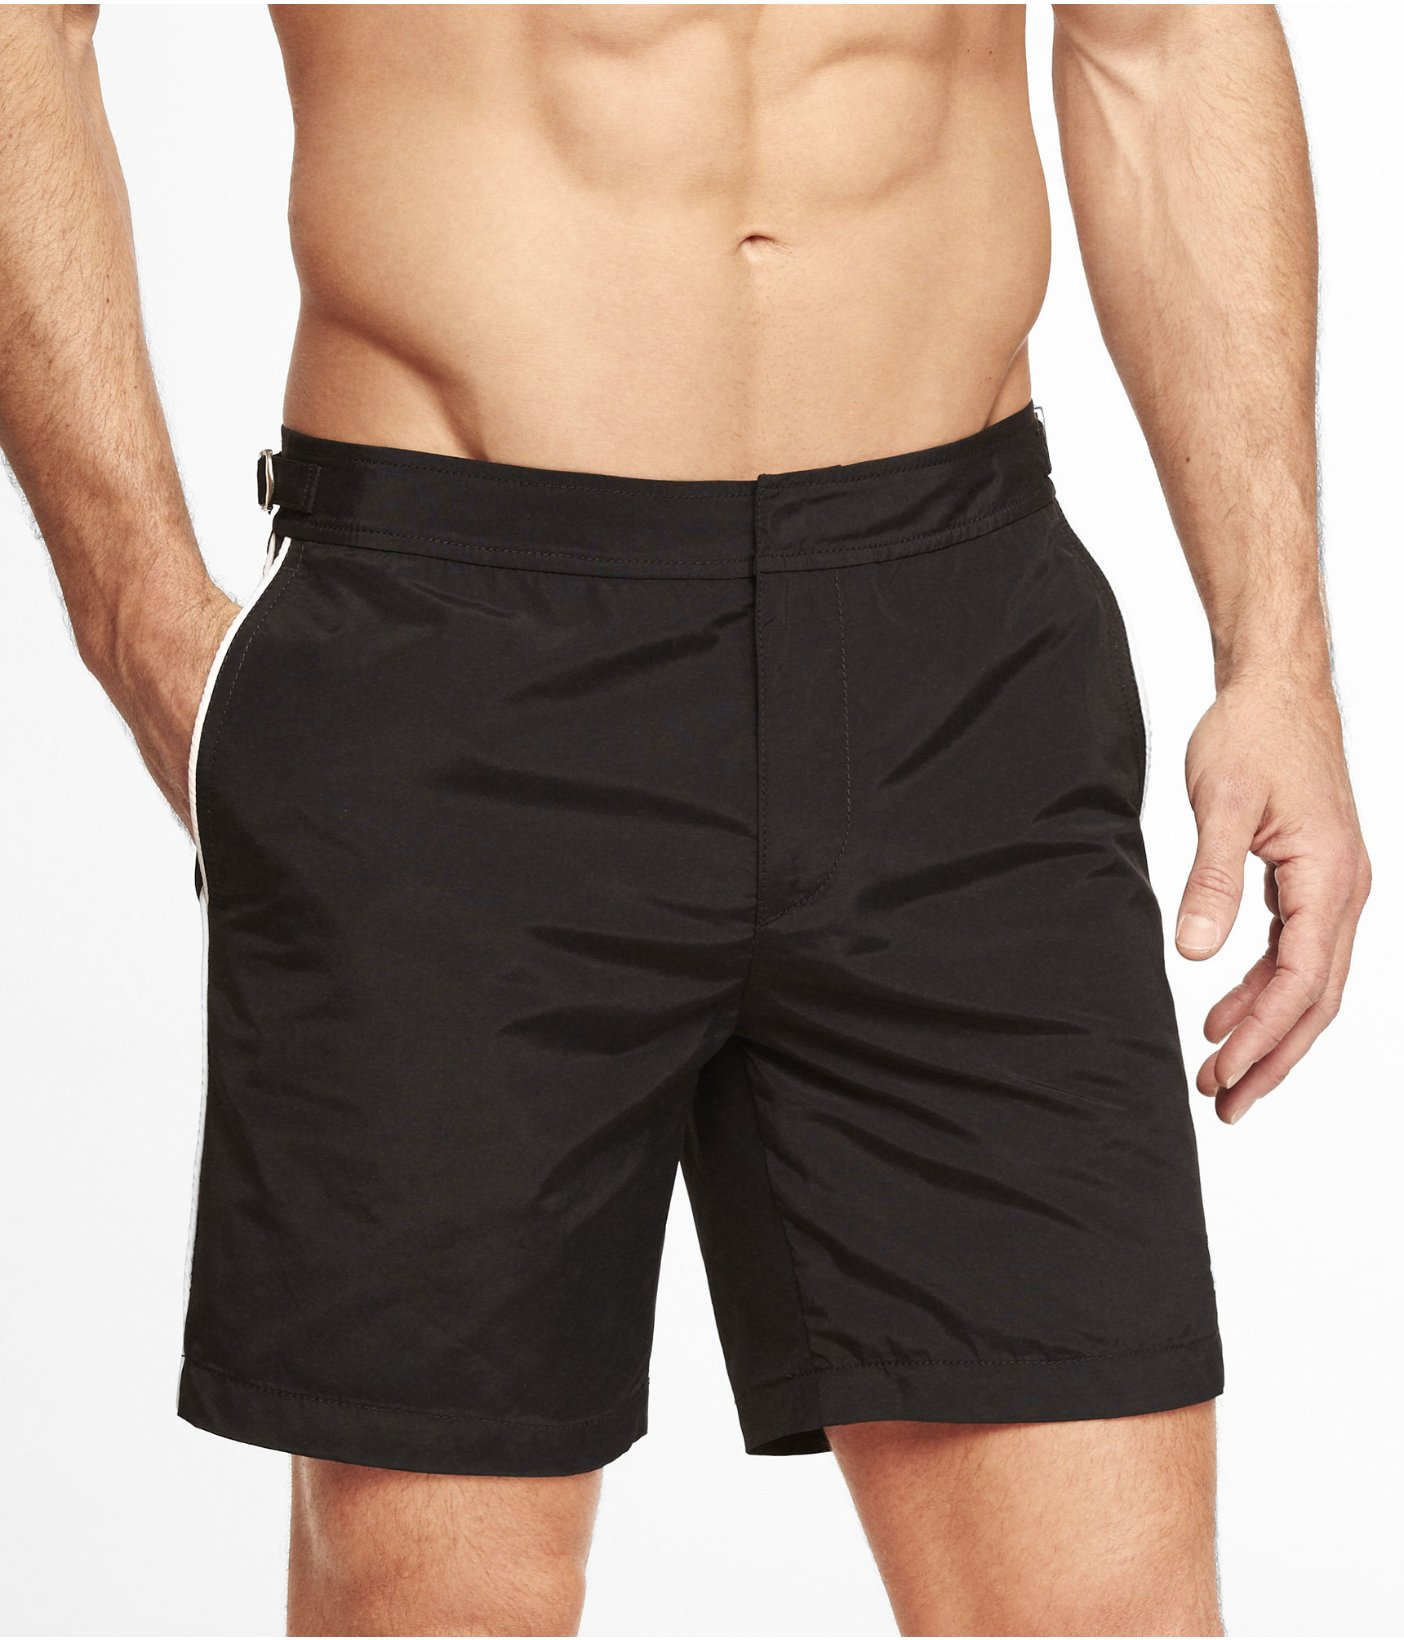 Lyst - Express 7 Inch Tailored Small Lion Swim Shorts in ...